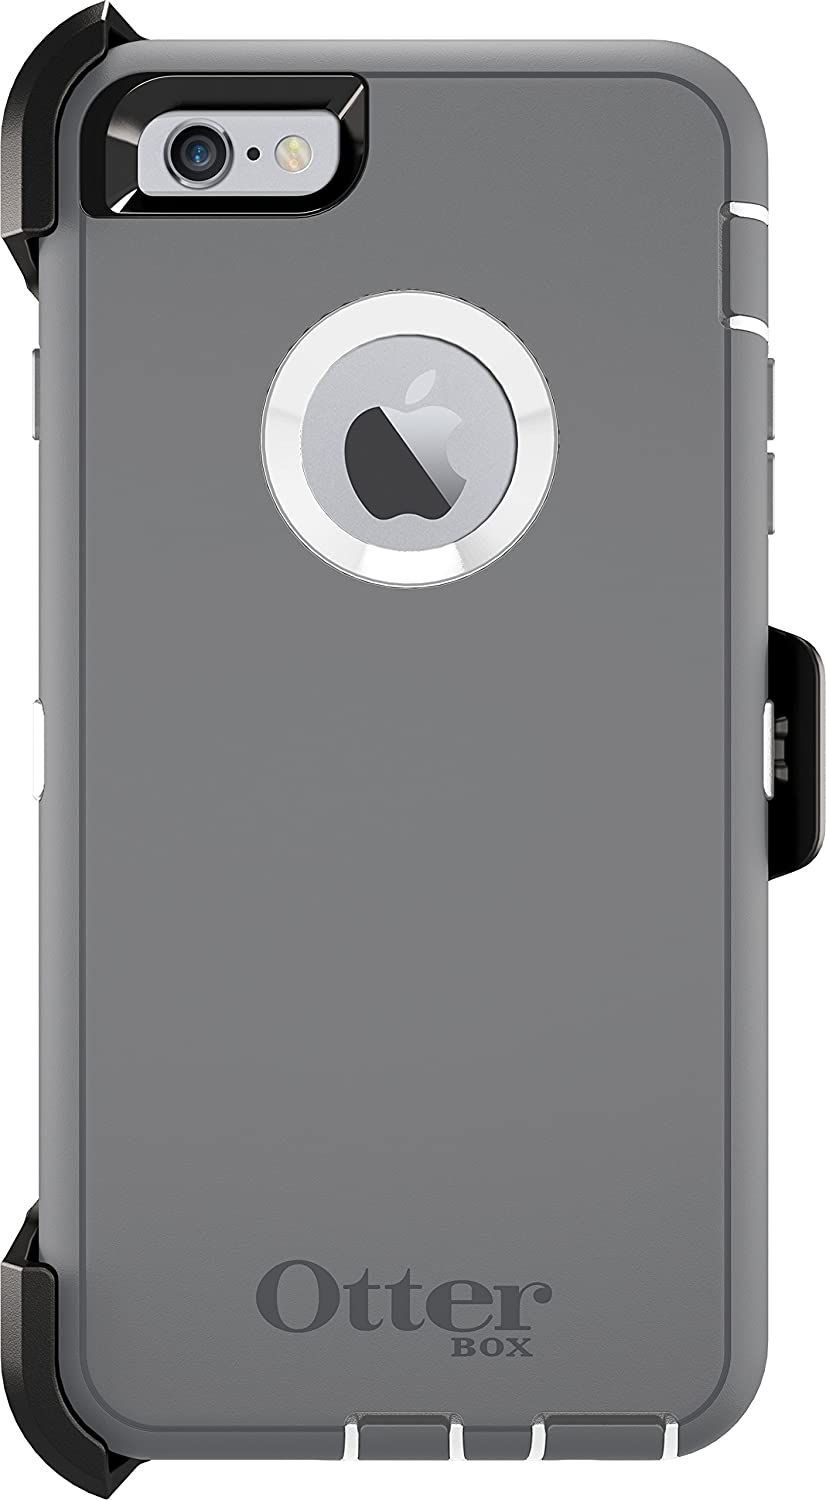 Amazon.com  OtterBox DEFENDER iPhone 6 Plus 6s Plus Case - Retail Packaging  - GLACIER (WHITE GUNMETAL GREY)  Cell Phones   Accessories d052fdaf0c45